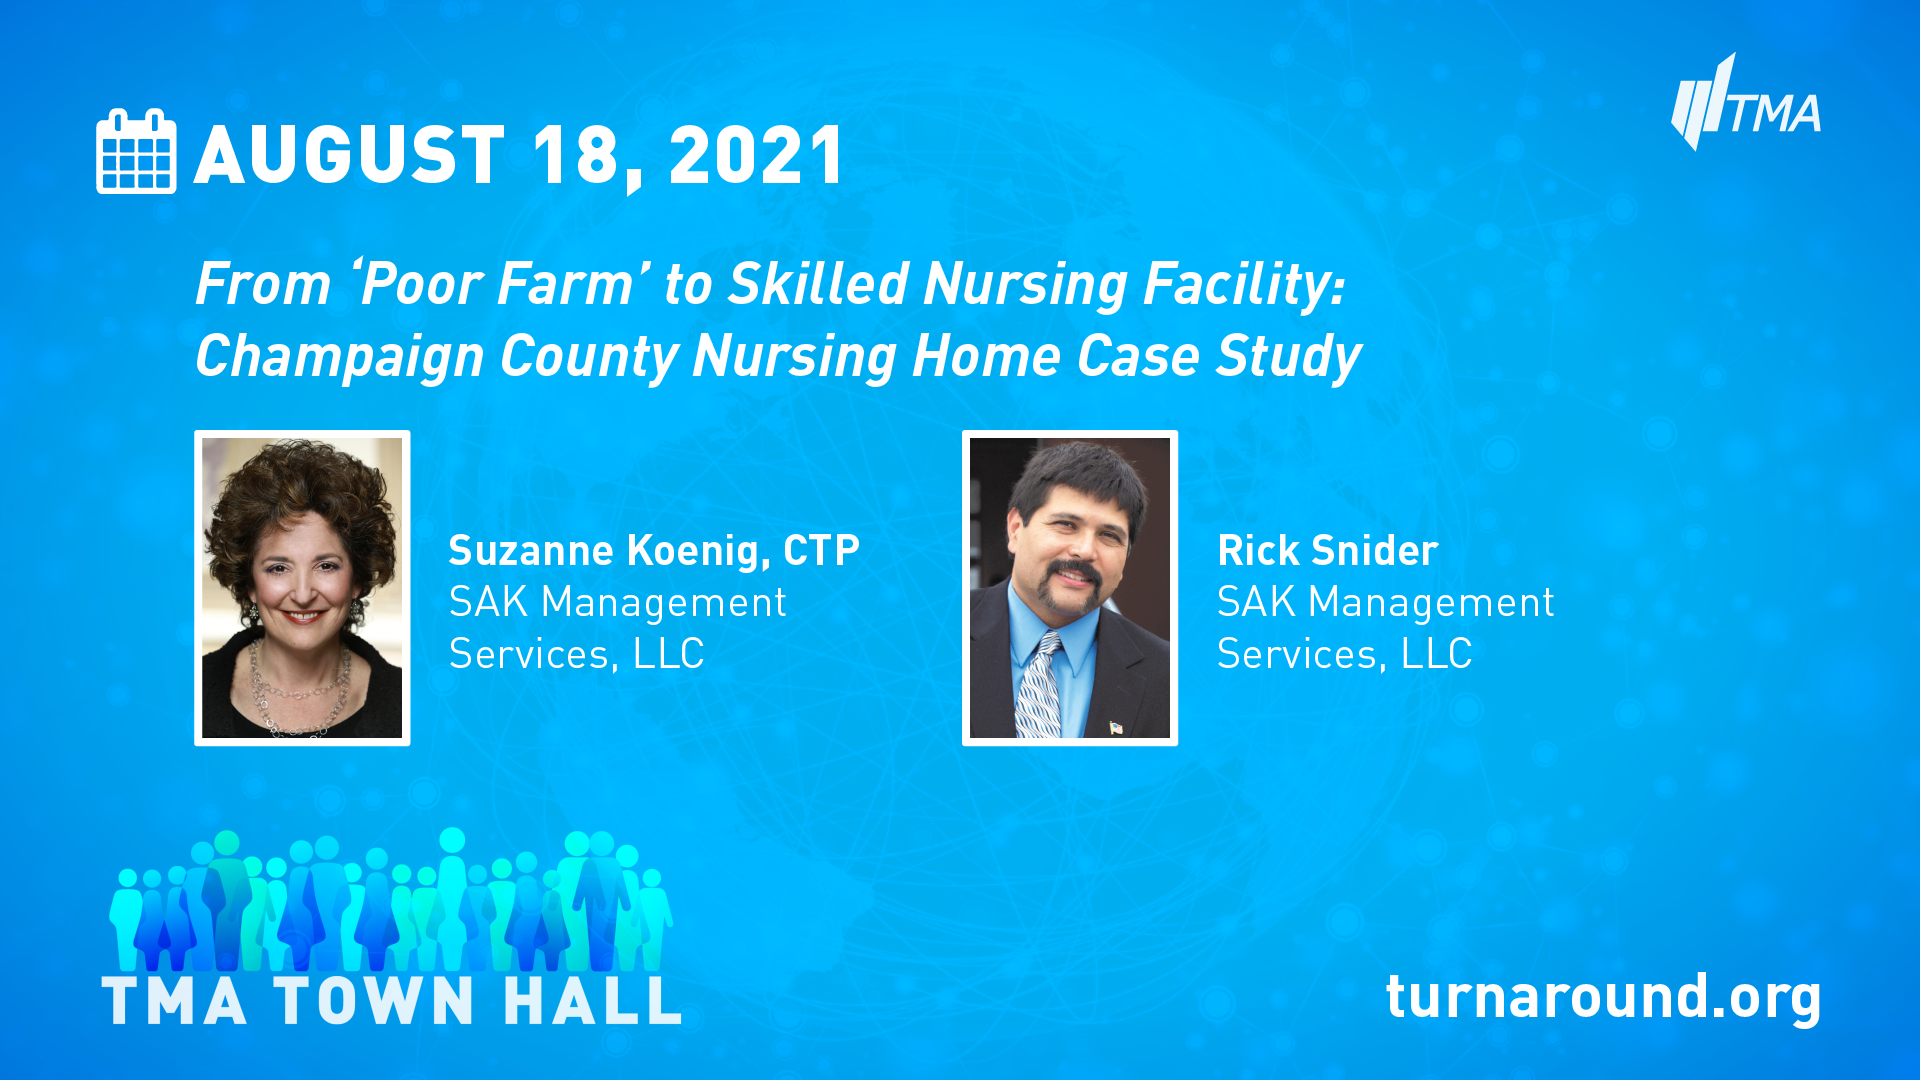 TMA Town Hall for August 18, 2021